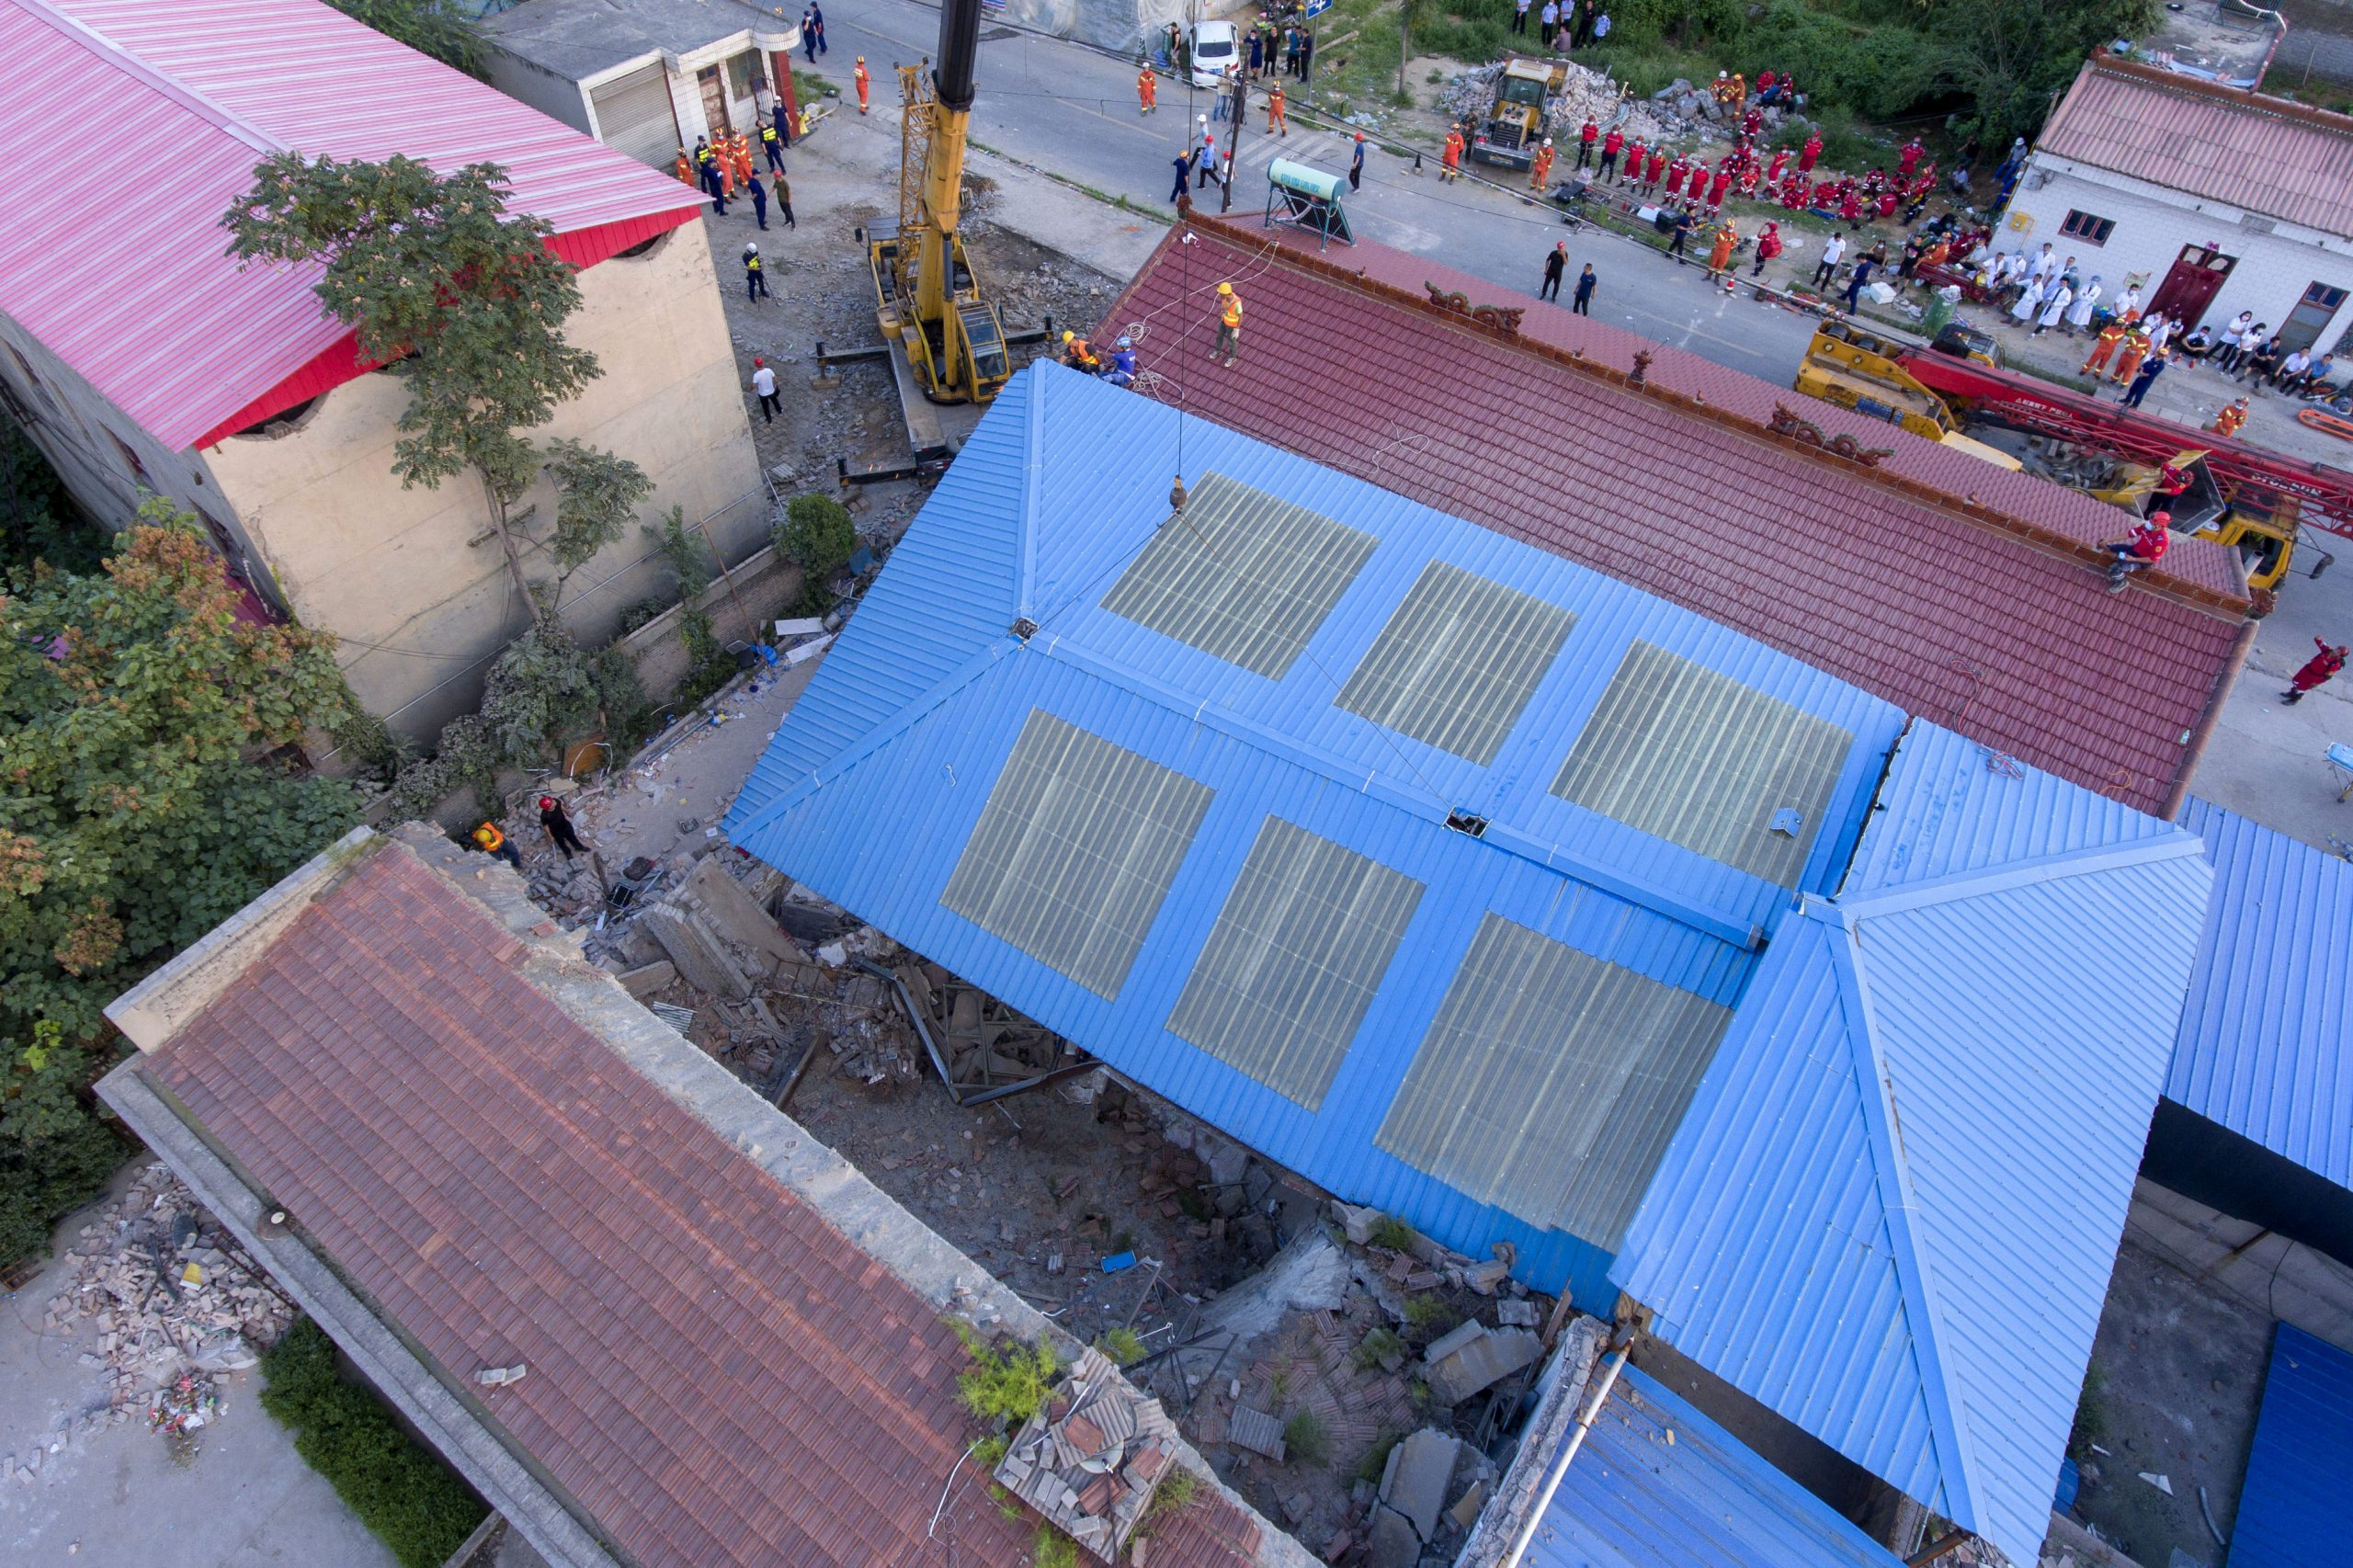 China Restaurant Collapses During the birthday party, killing 29 people